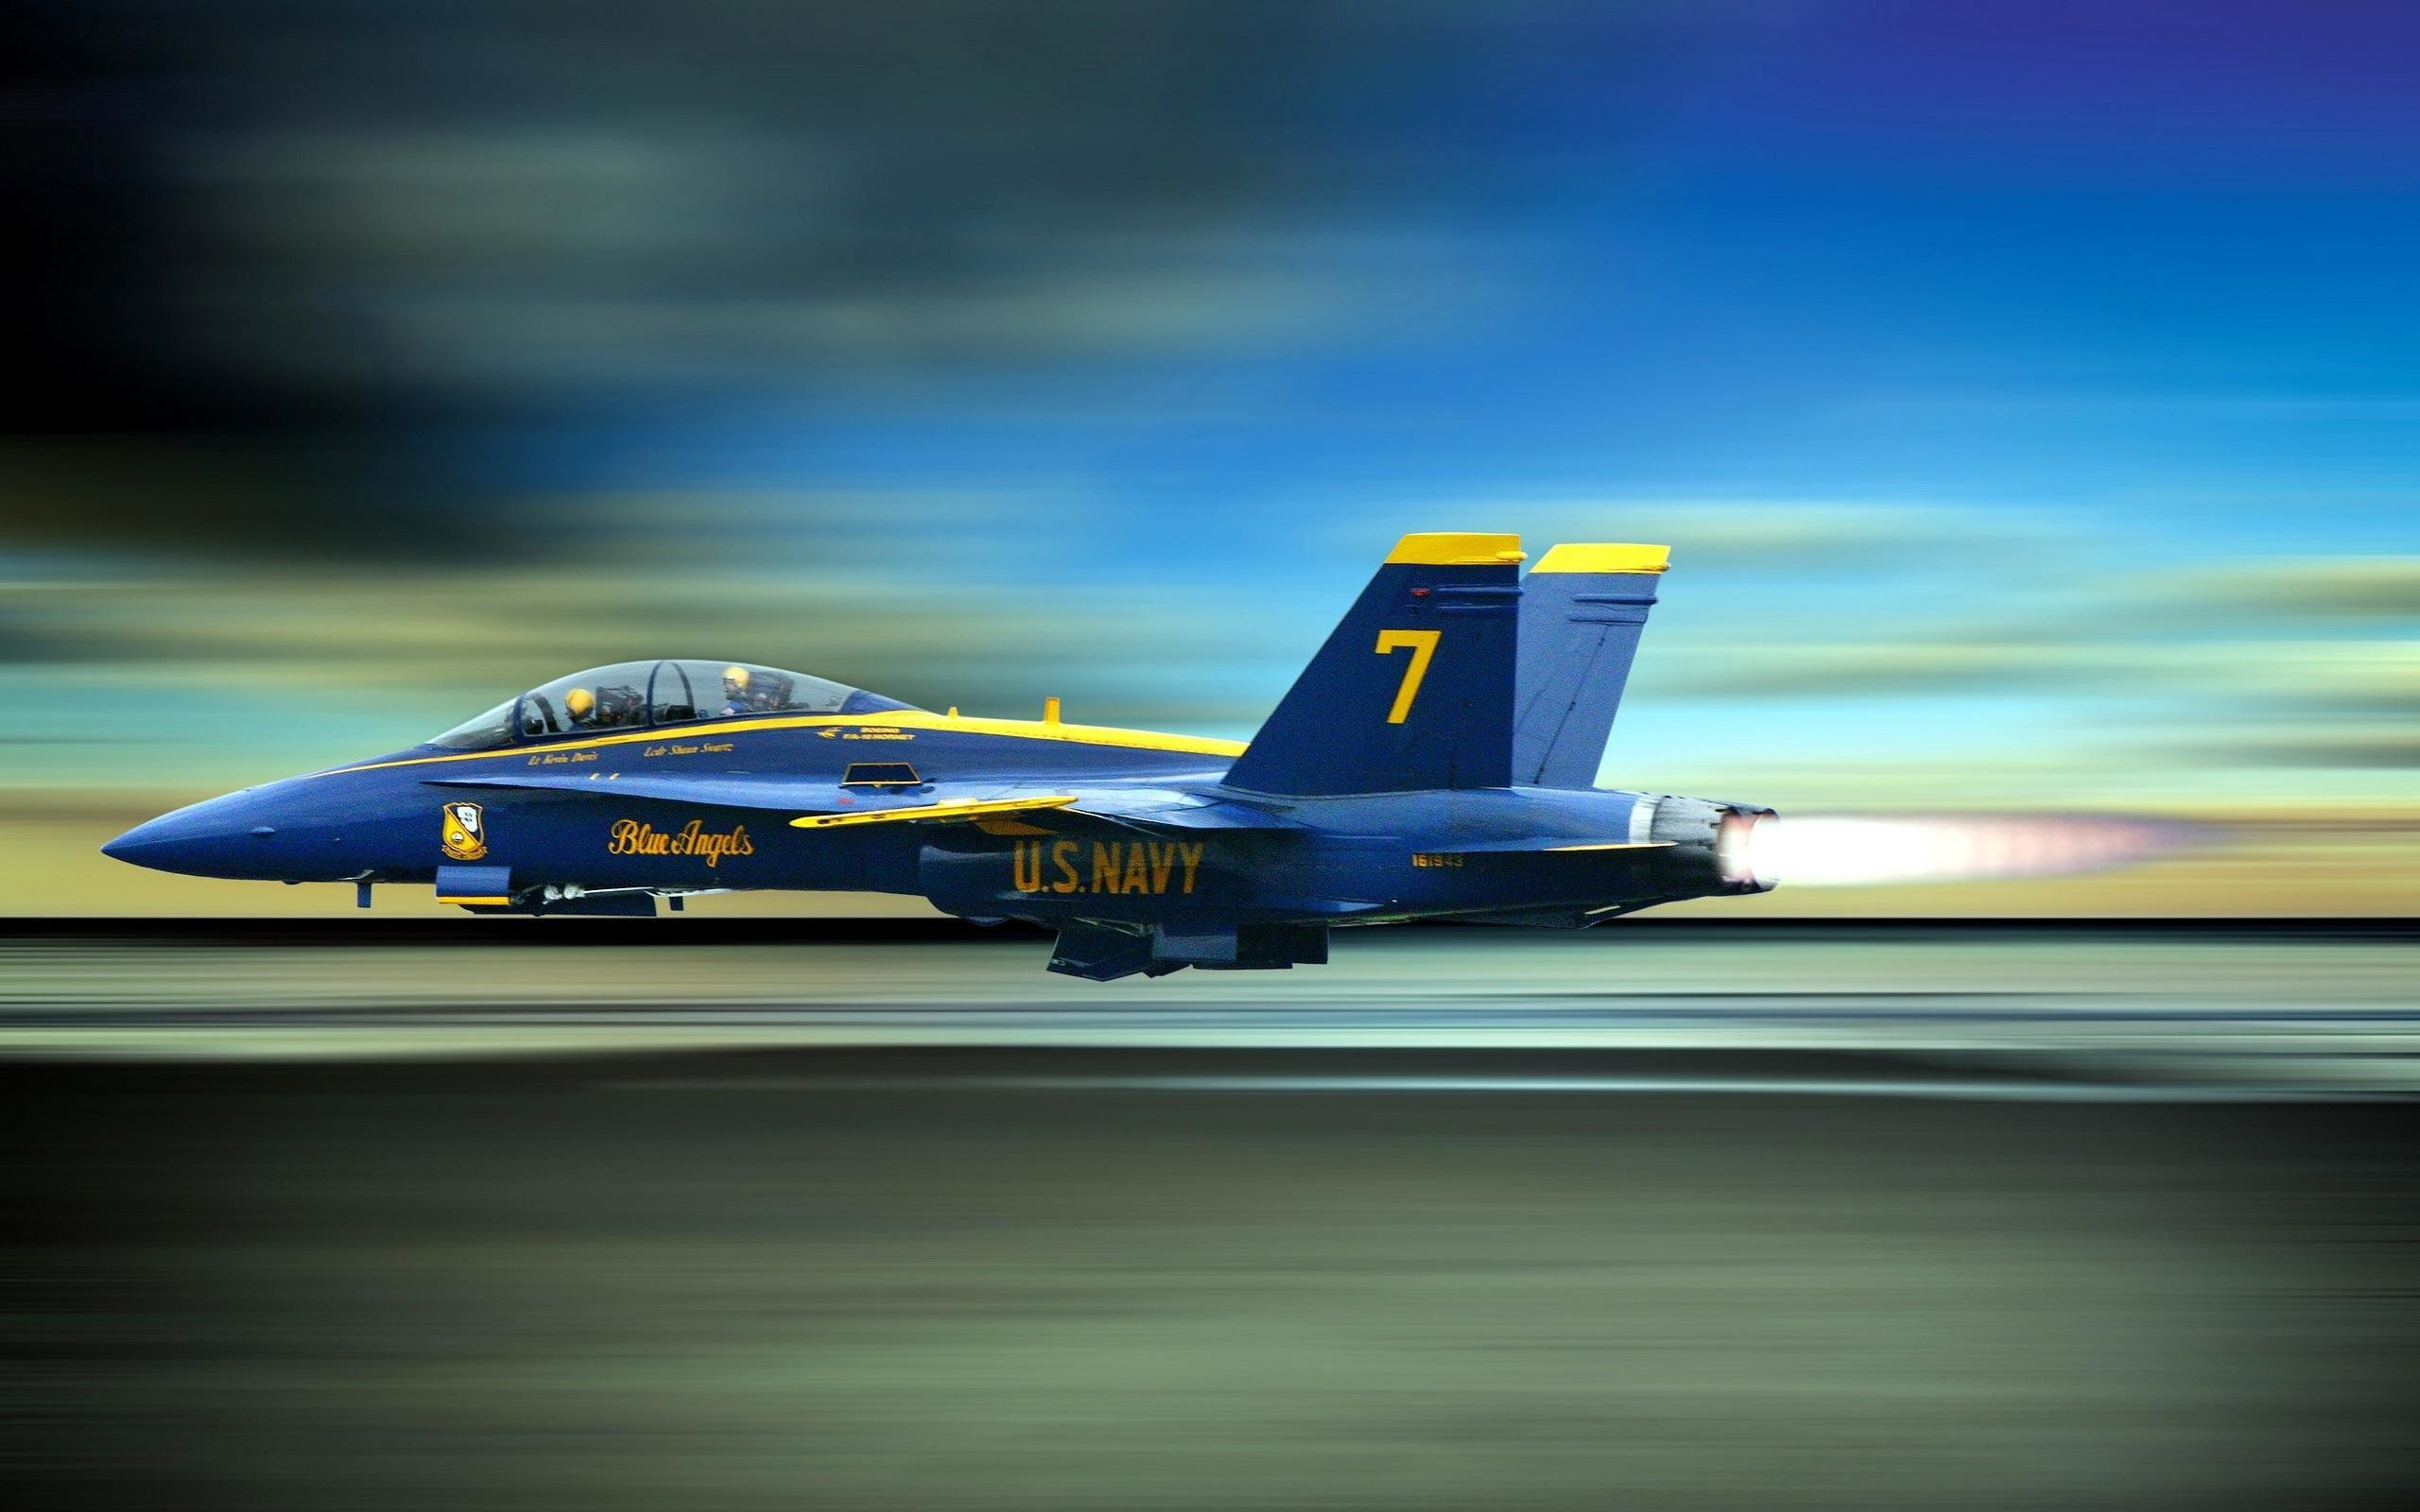 Wallpapers For > Blue Angels Wallpaper